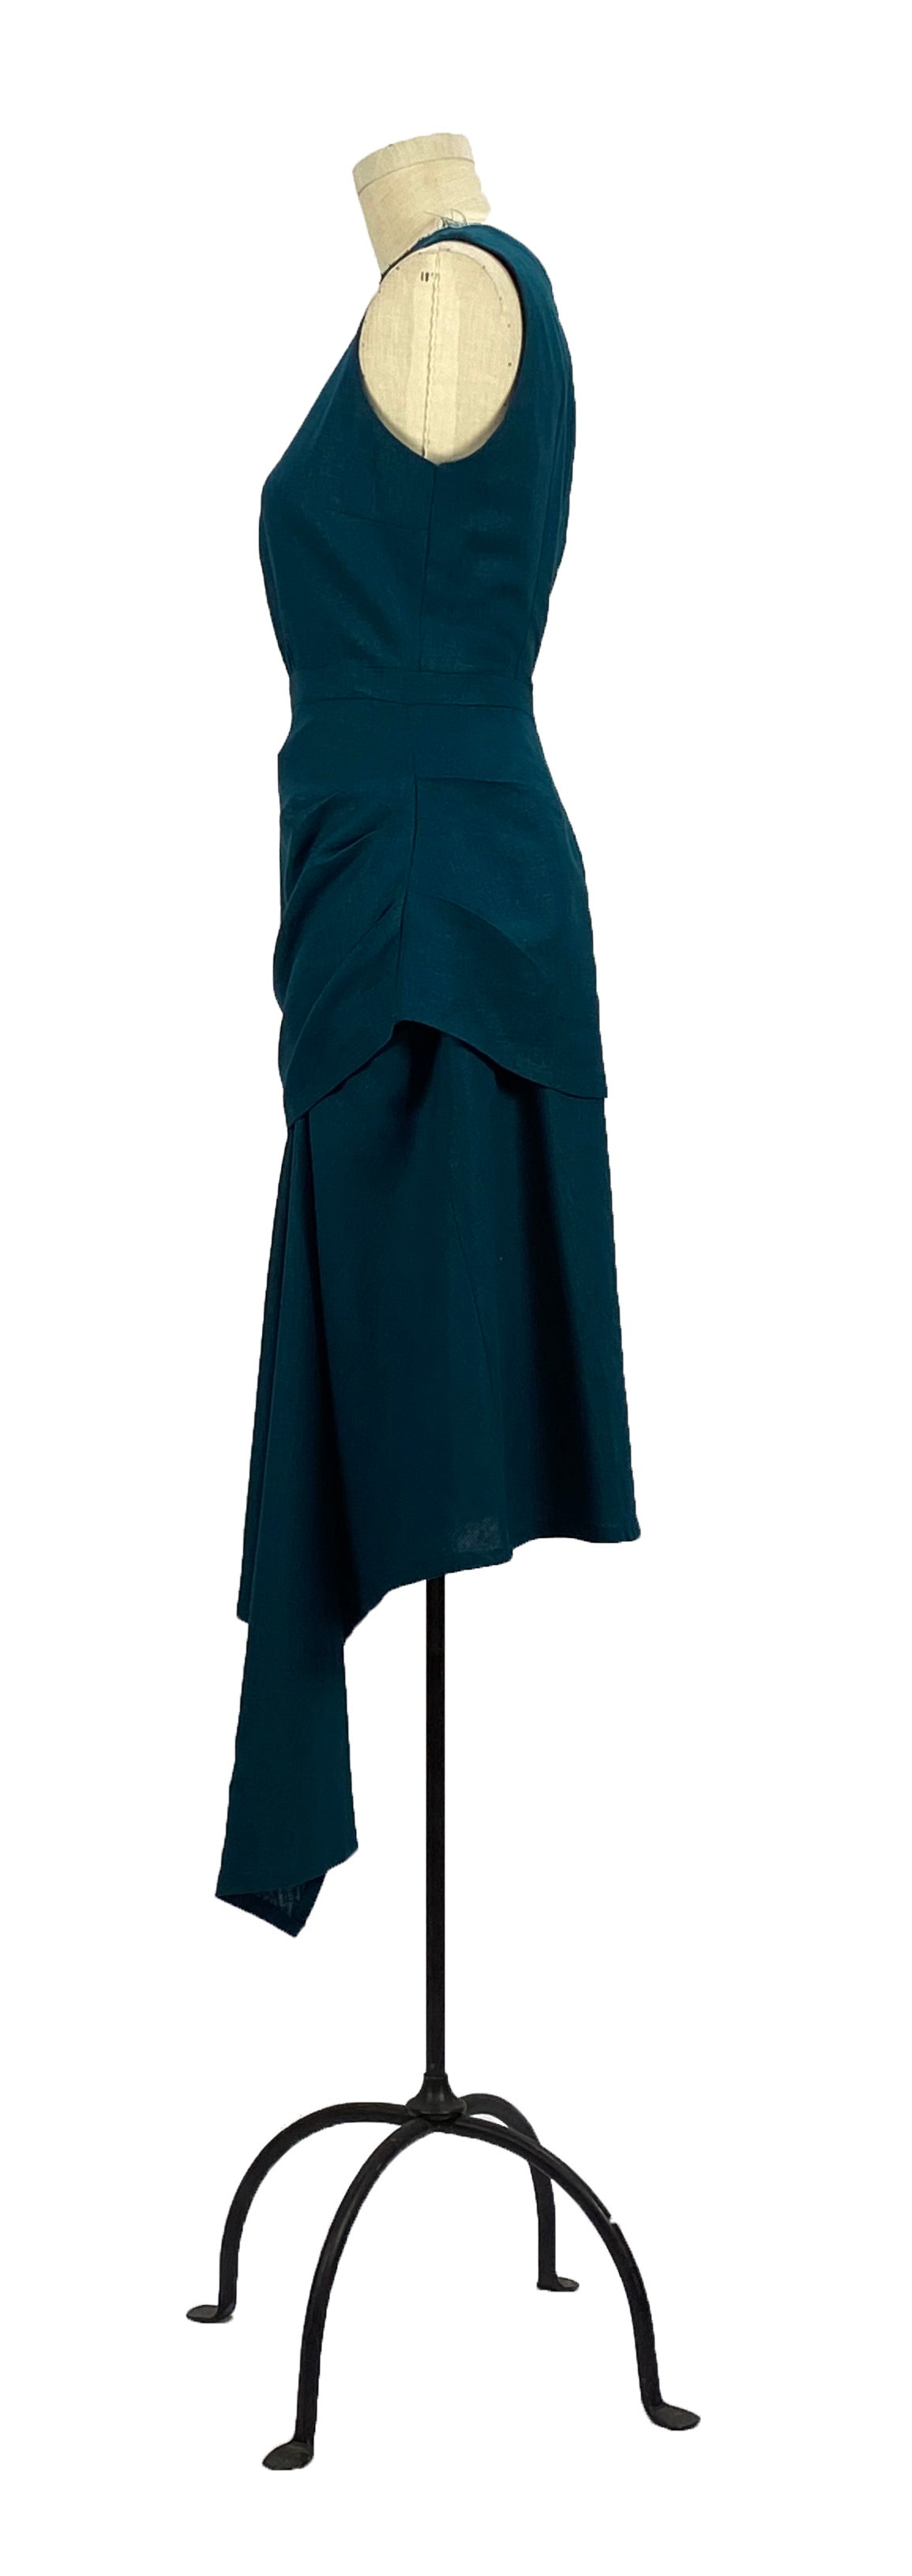 Image of Ronen skirt in teal